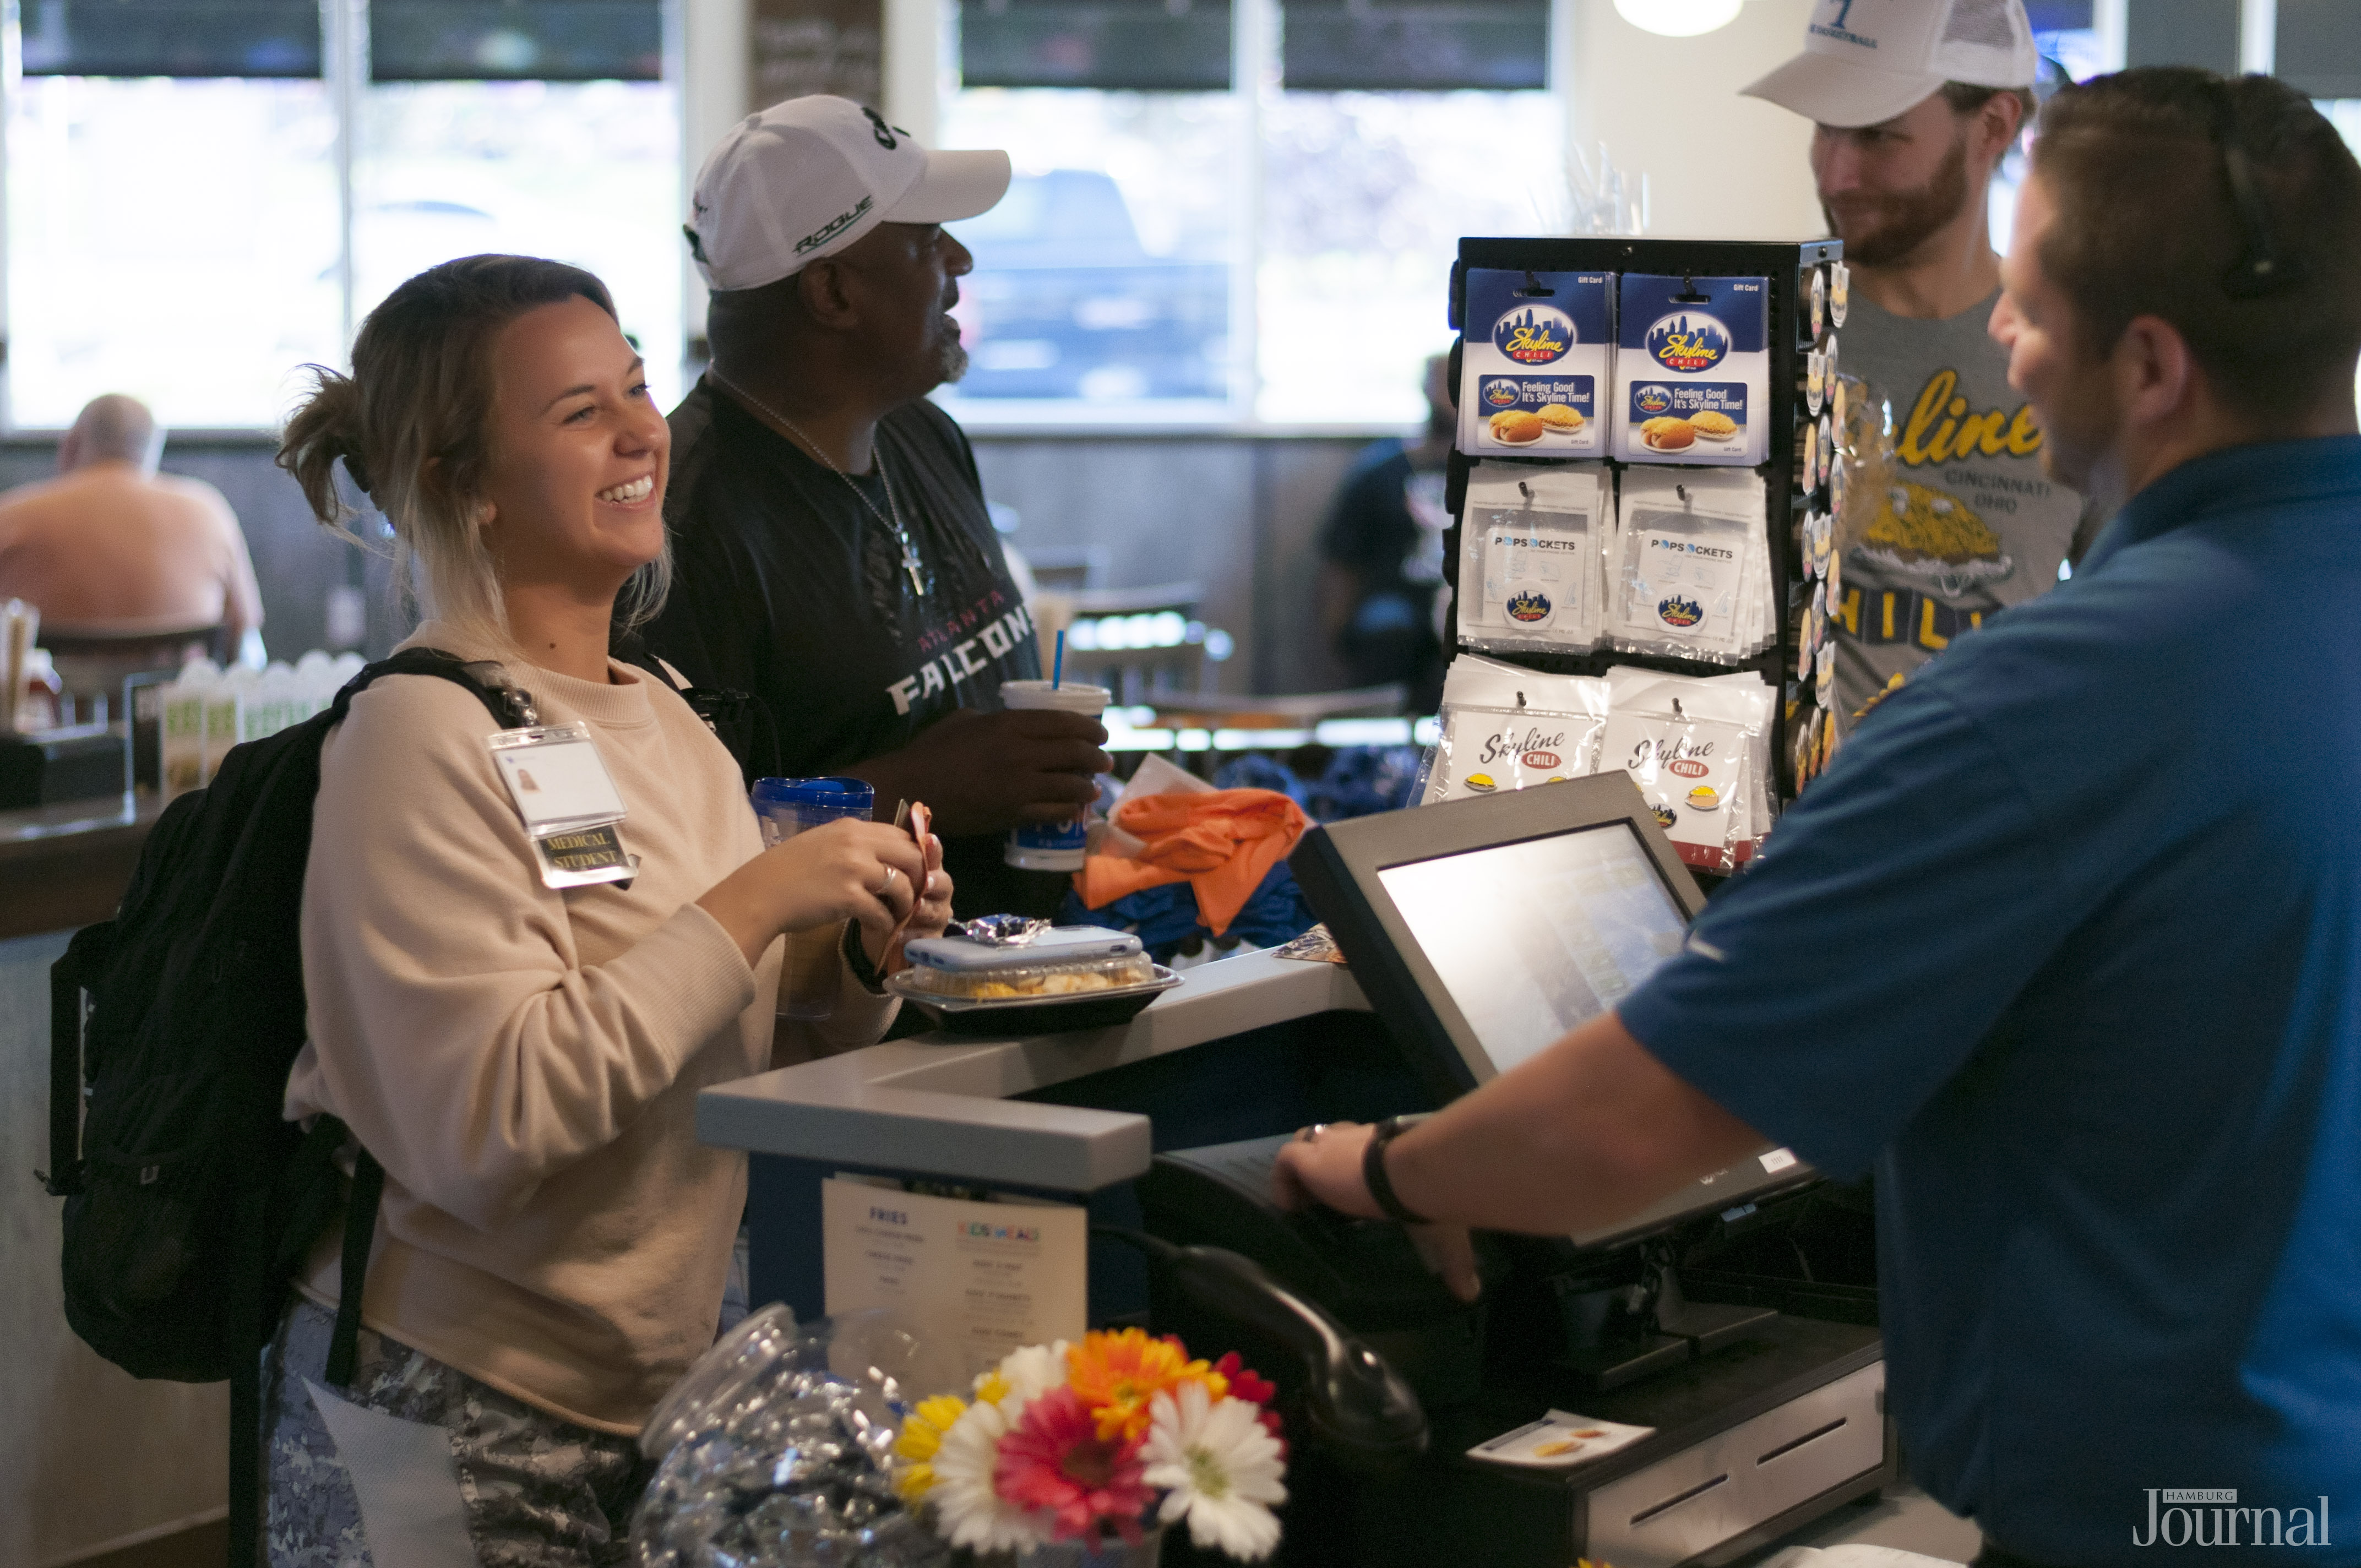 Skyline Chili on Richmond Road is Open for Business - Hamburg Journal